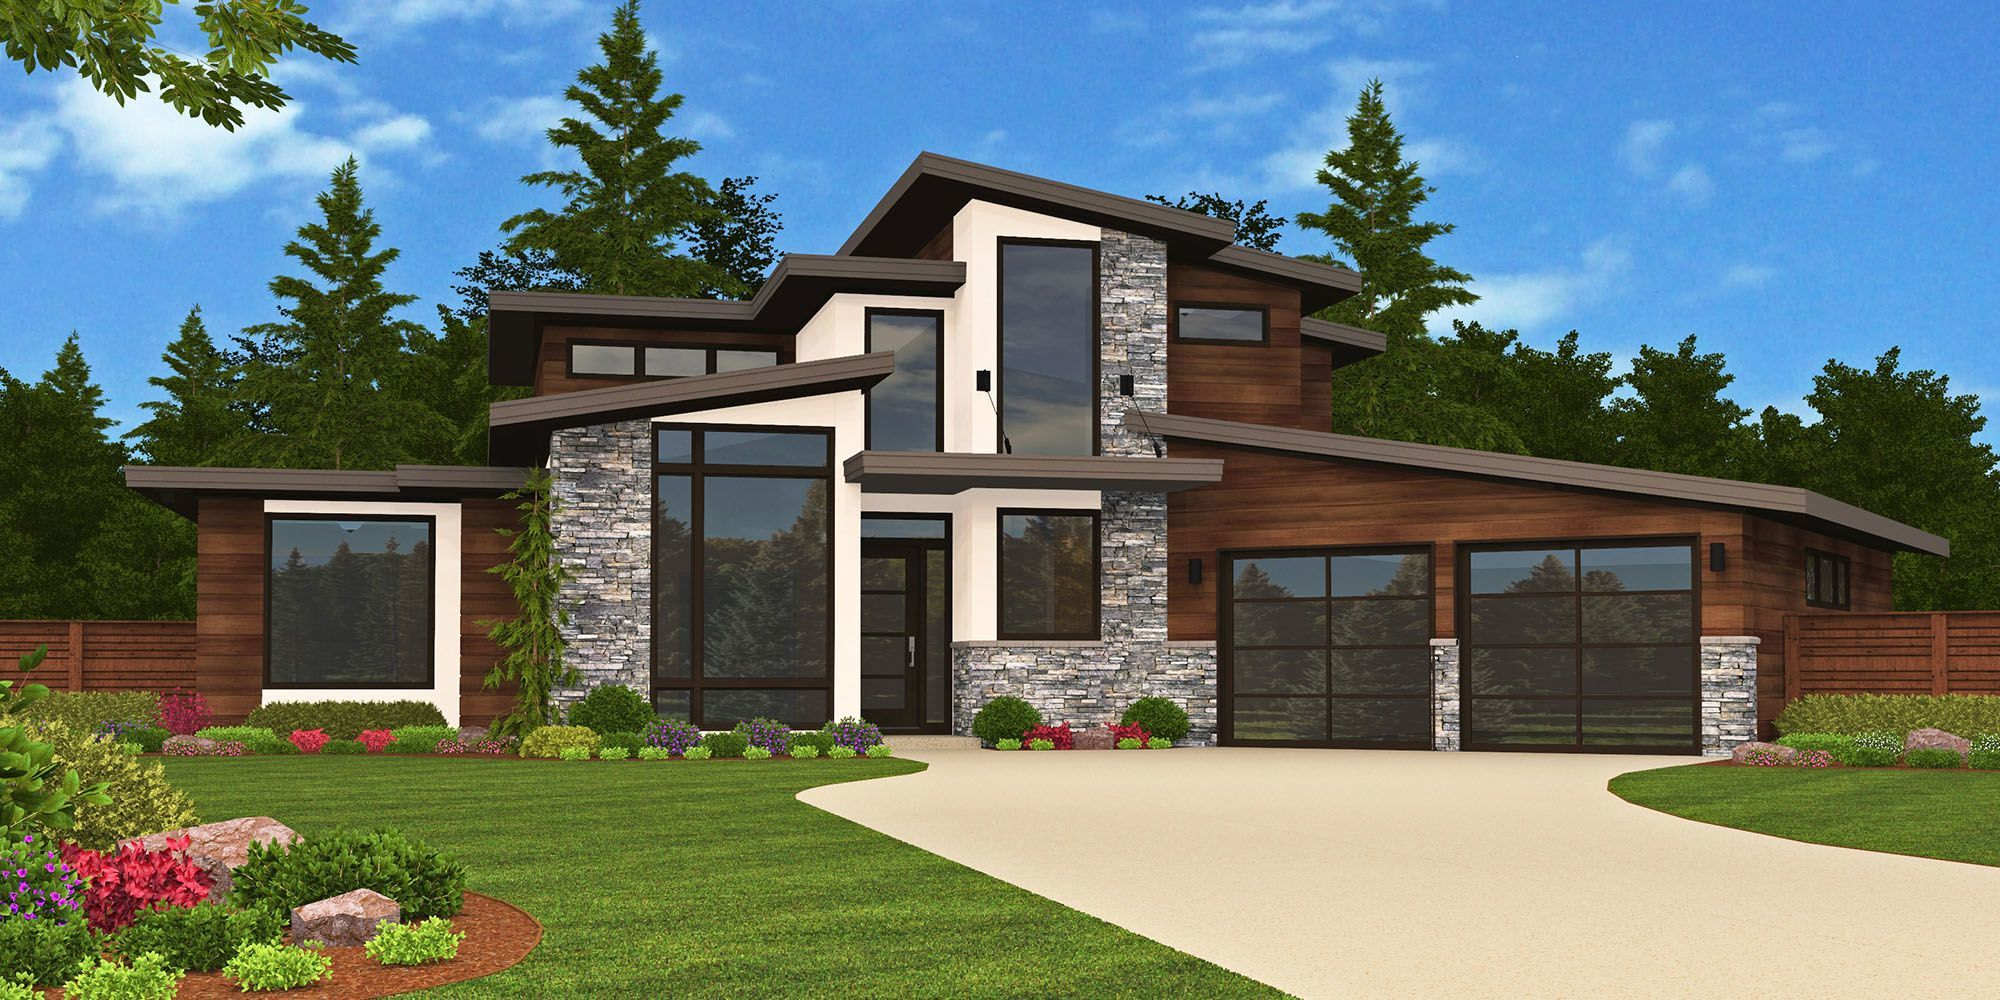 Sting x 16a house plan modern house plans for Modern home plans